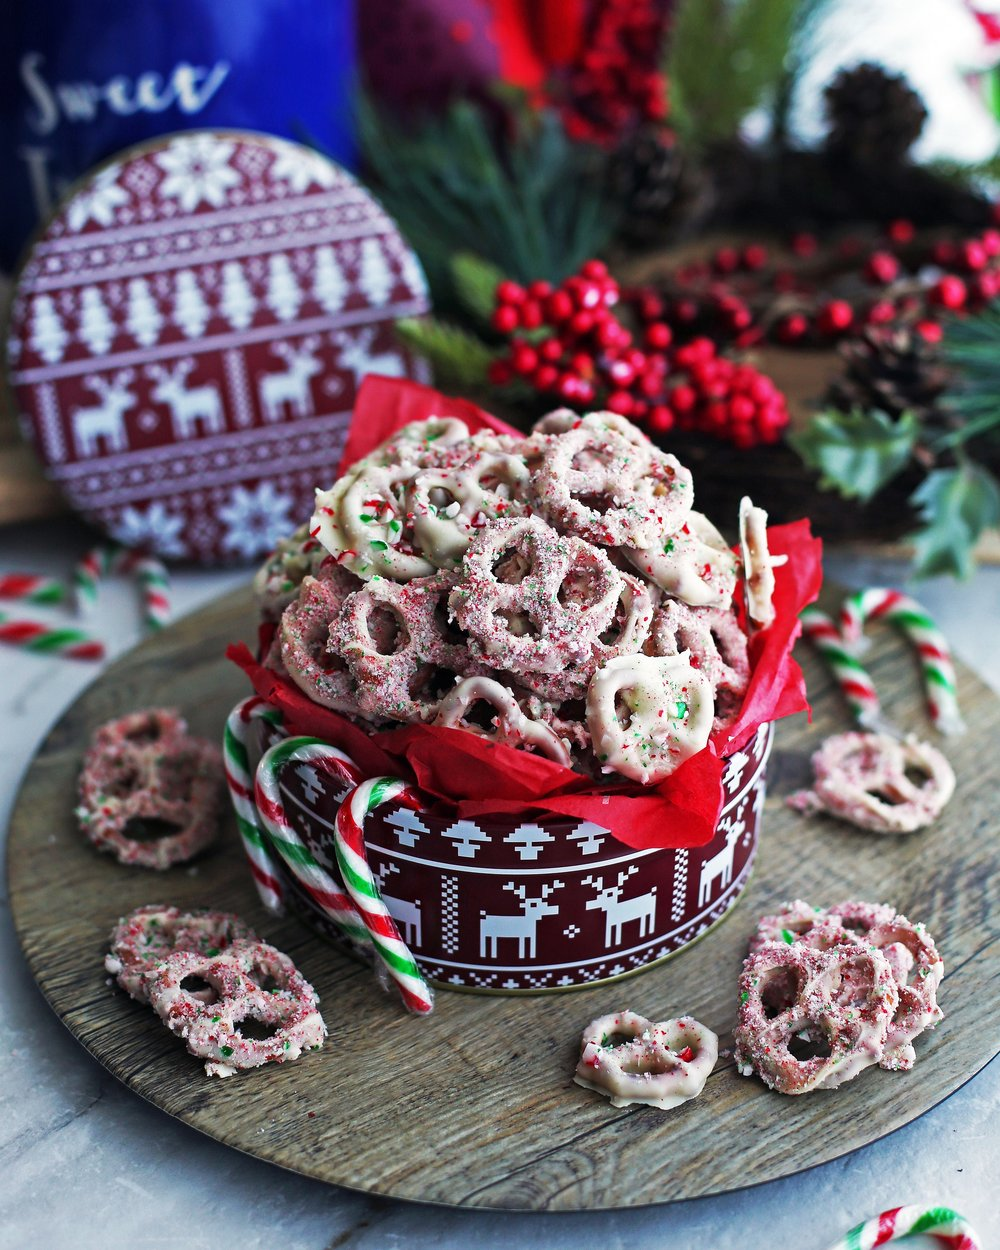 Red and green candy cane chocolate-covered pretzels overflowing in a large red tin.